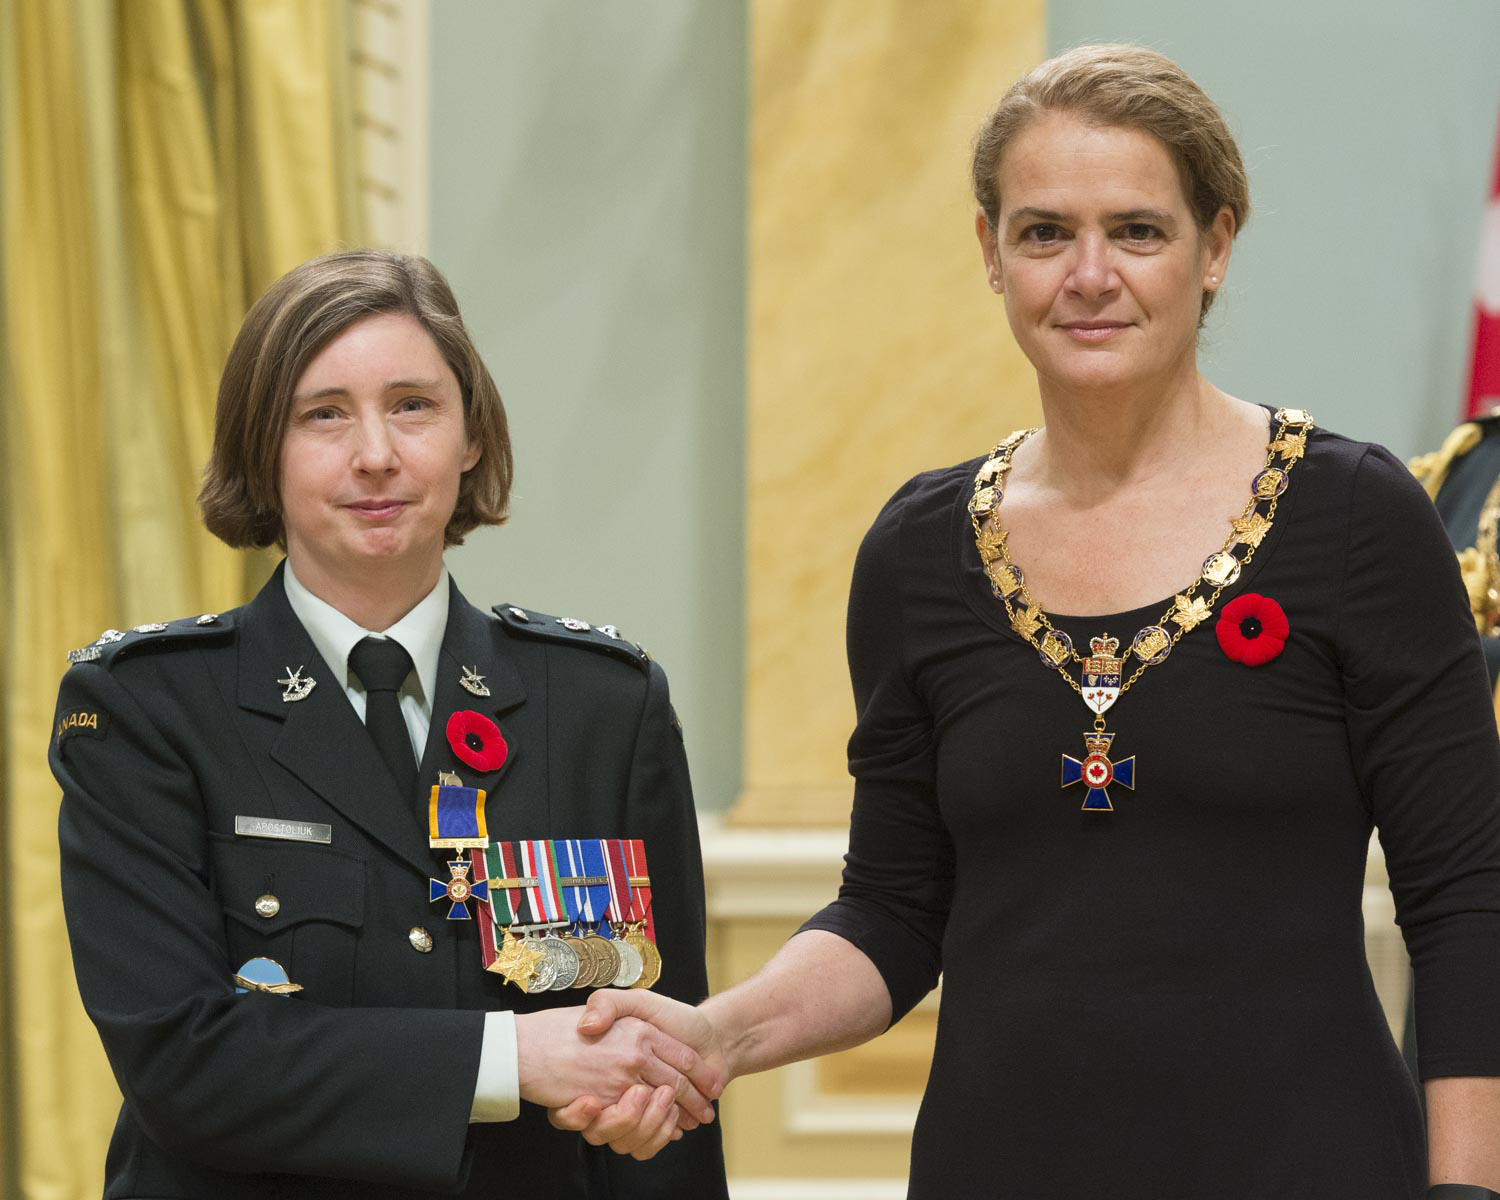 Her Excellency presented the Order of Military Merit at the Officer level (O.M.M.) to Lieutenant-Colonel Holly Abigail Bernita Apostoliuk, O.M.M., C.D., from the Office of the Chief of the Air Force Staff in Ottawa, Ontario.